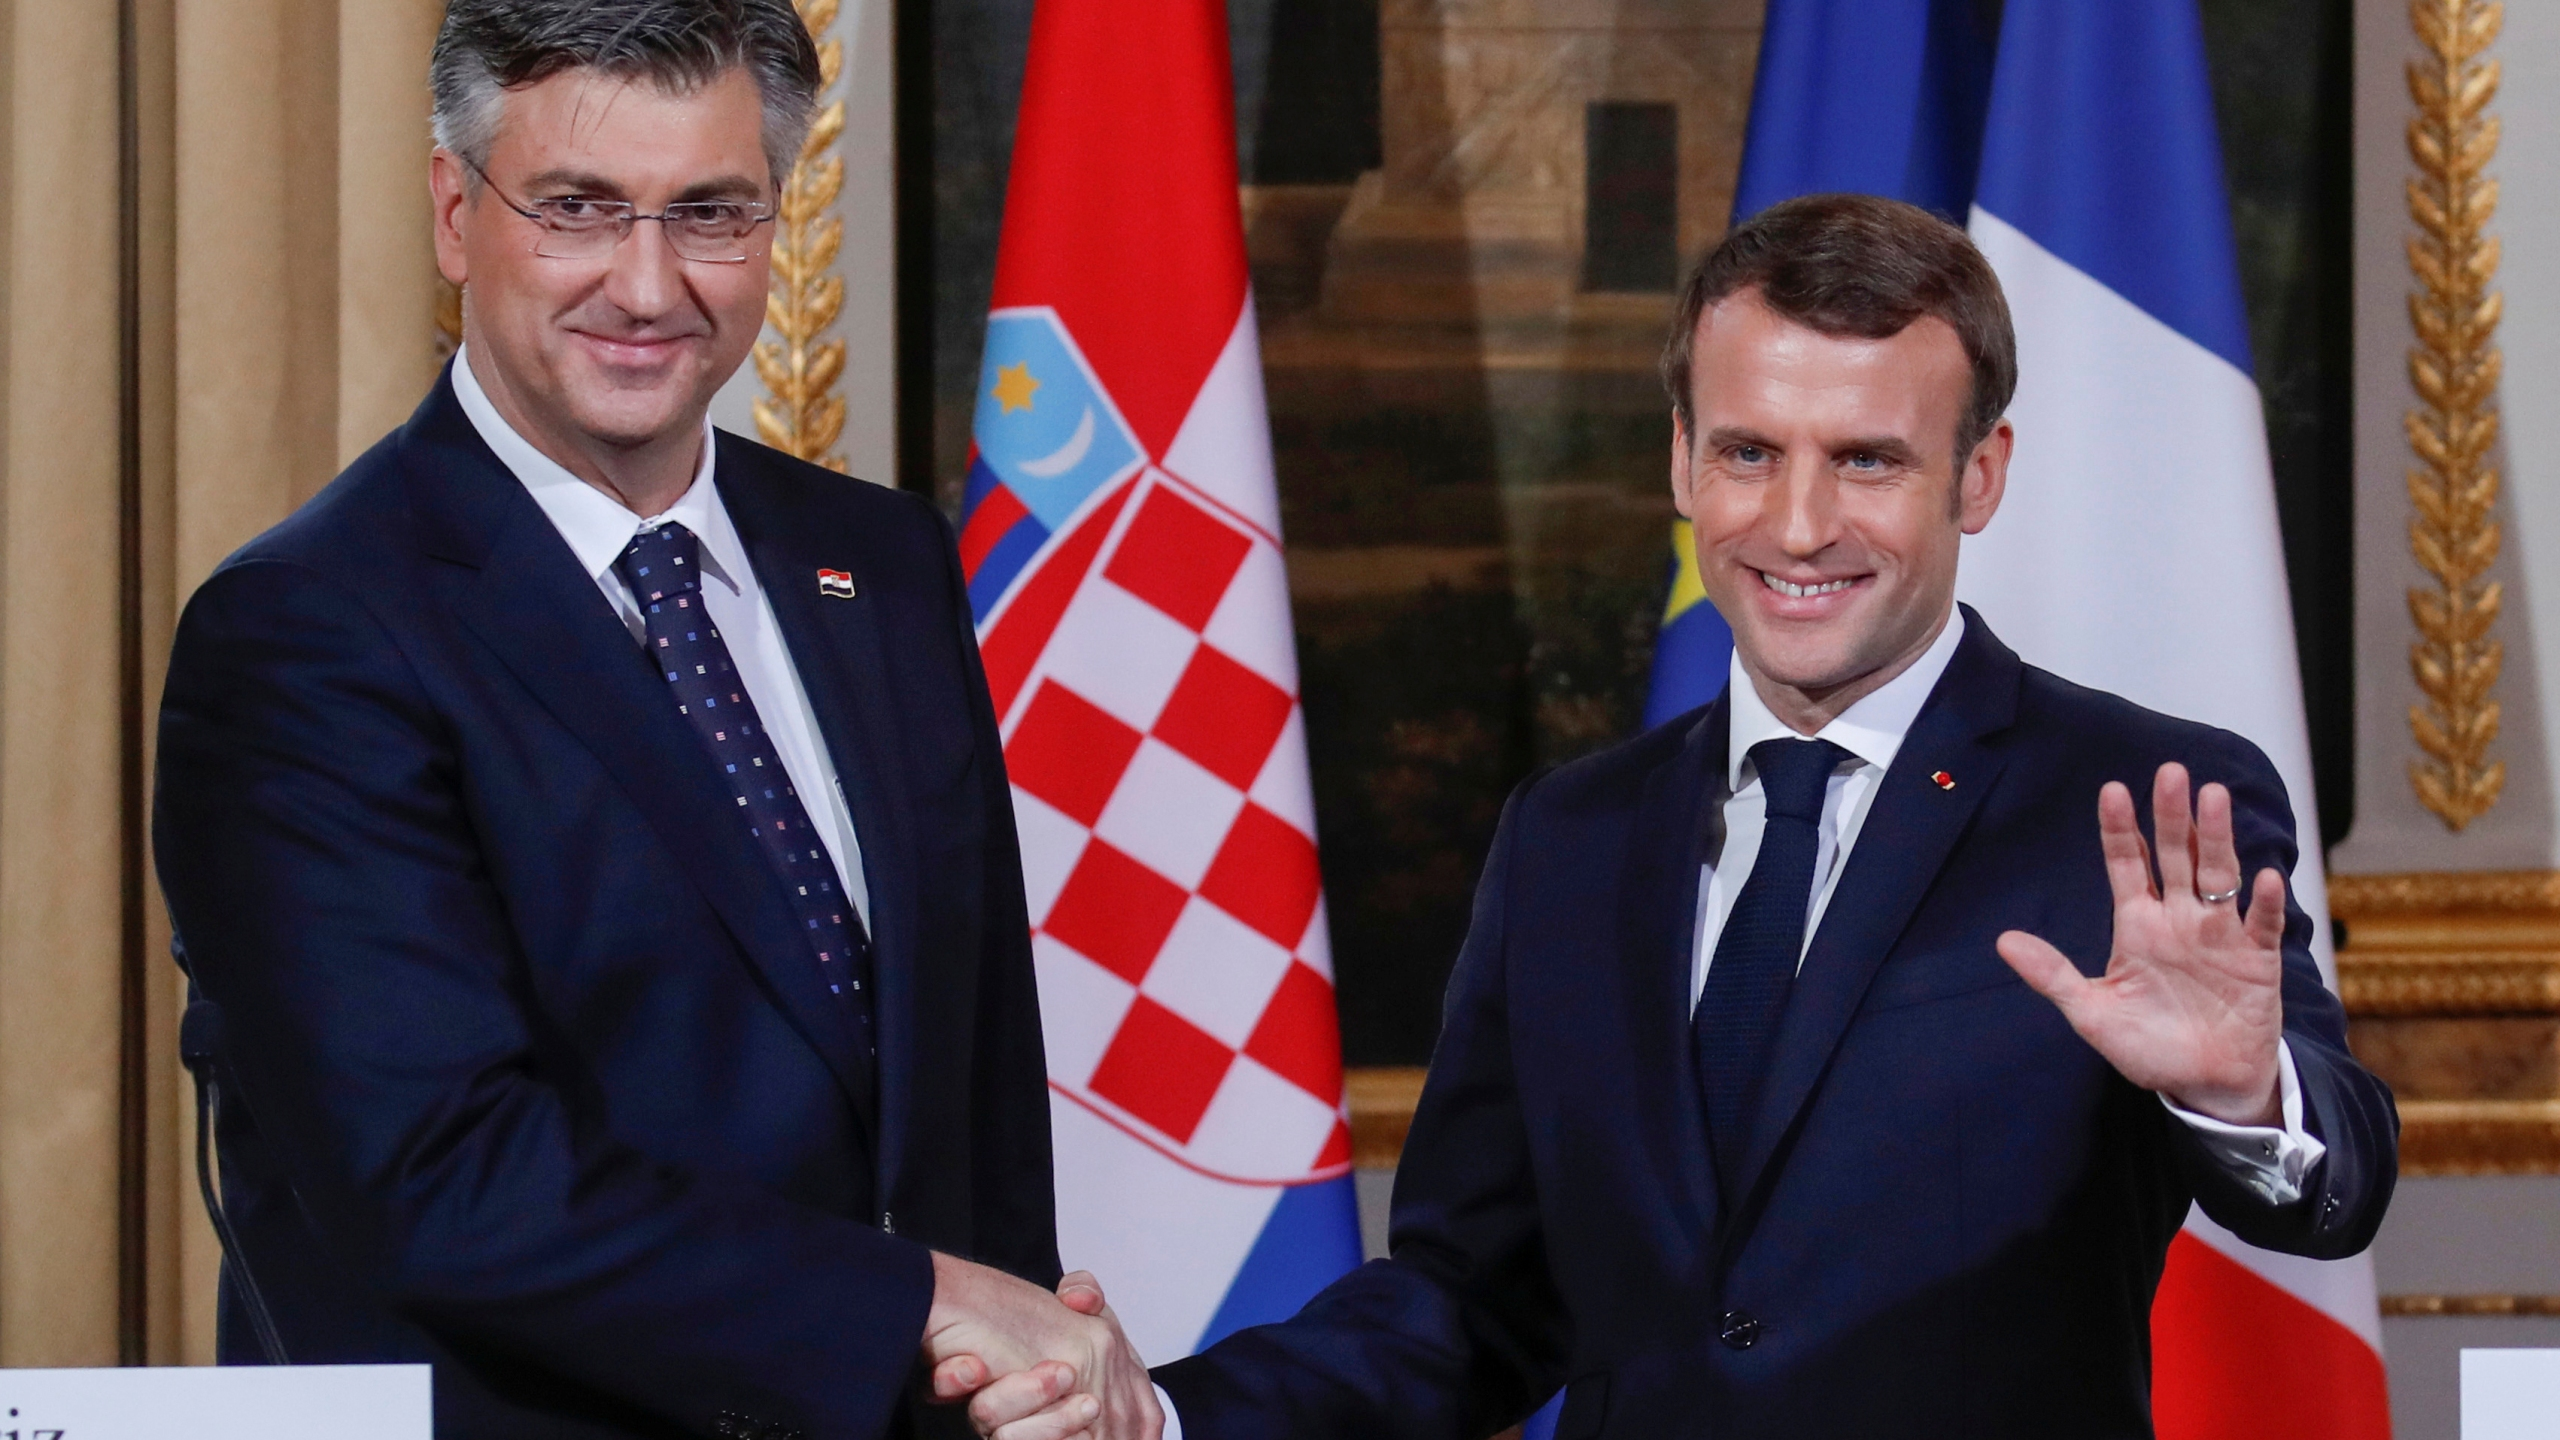 French President Emmanuel Macron meets Croatian Prime Minister Andrej Plenkovic in Paris